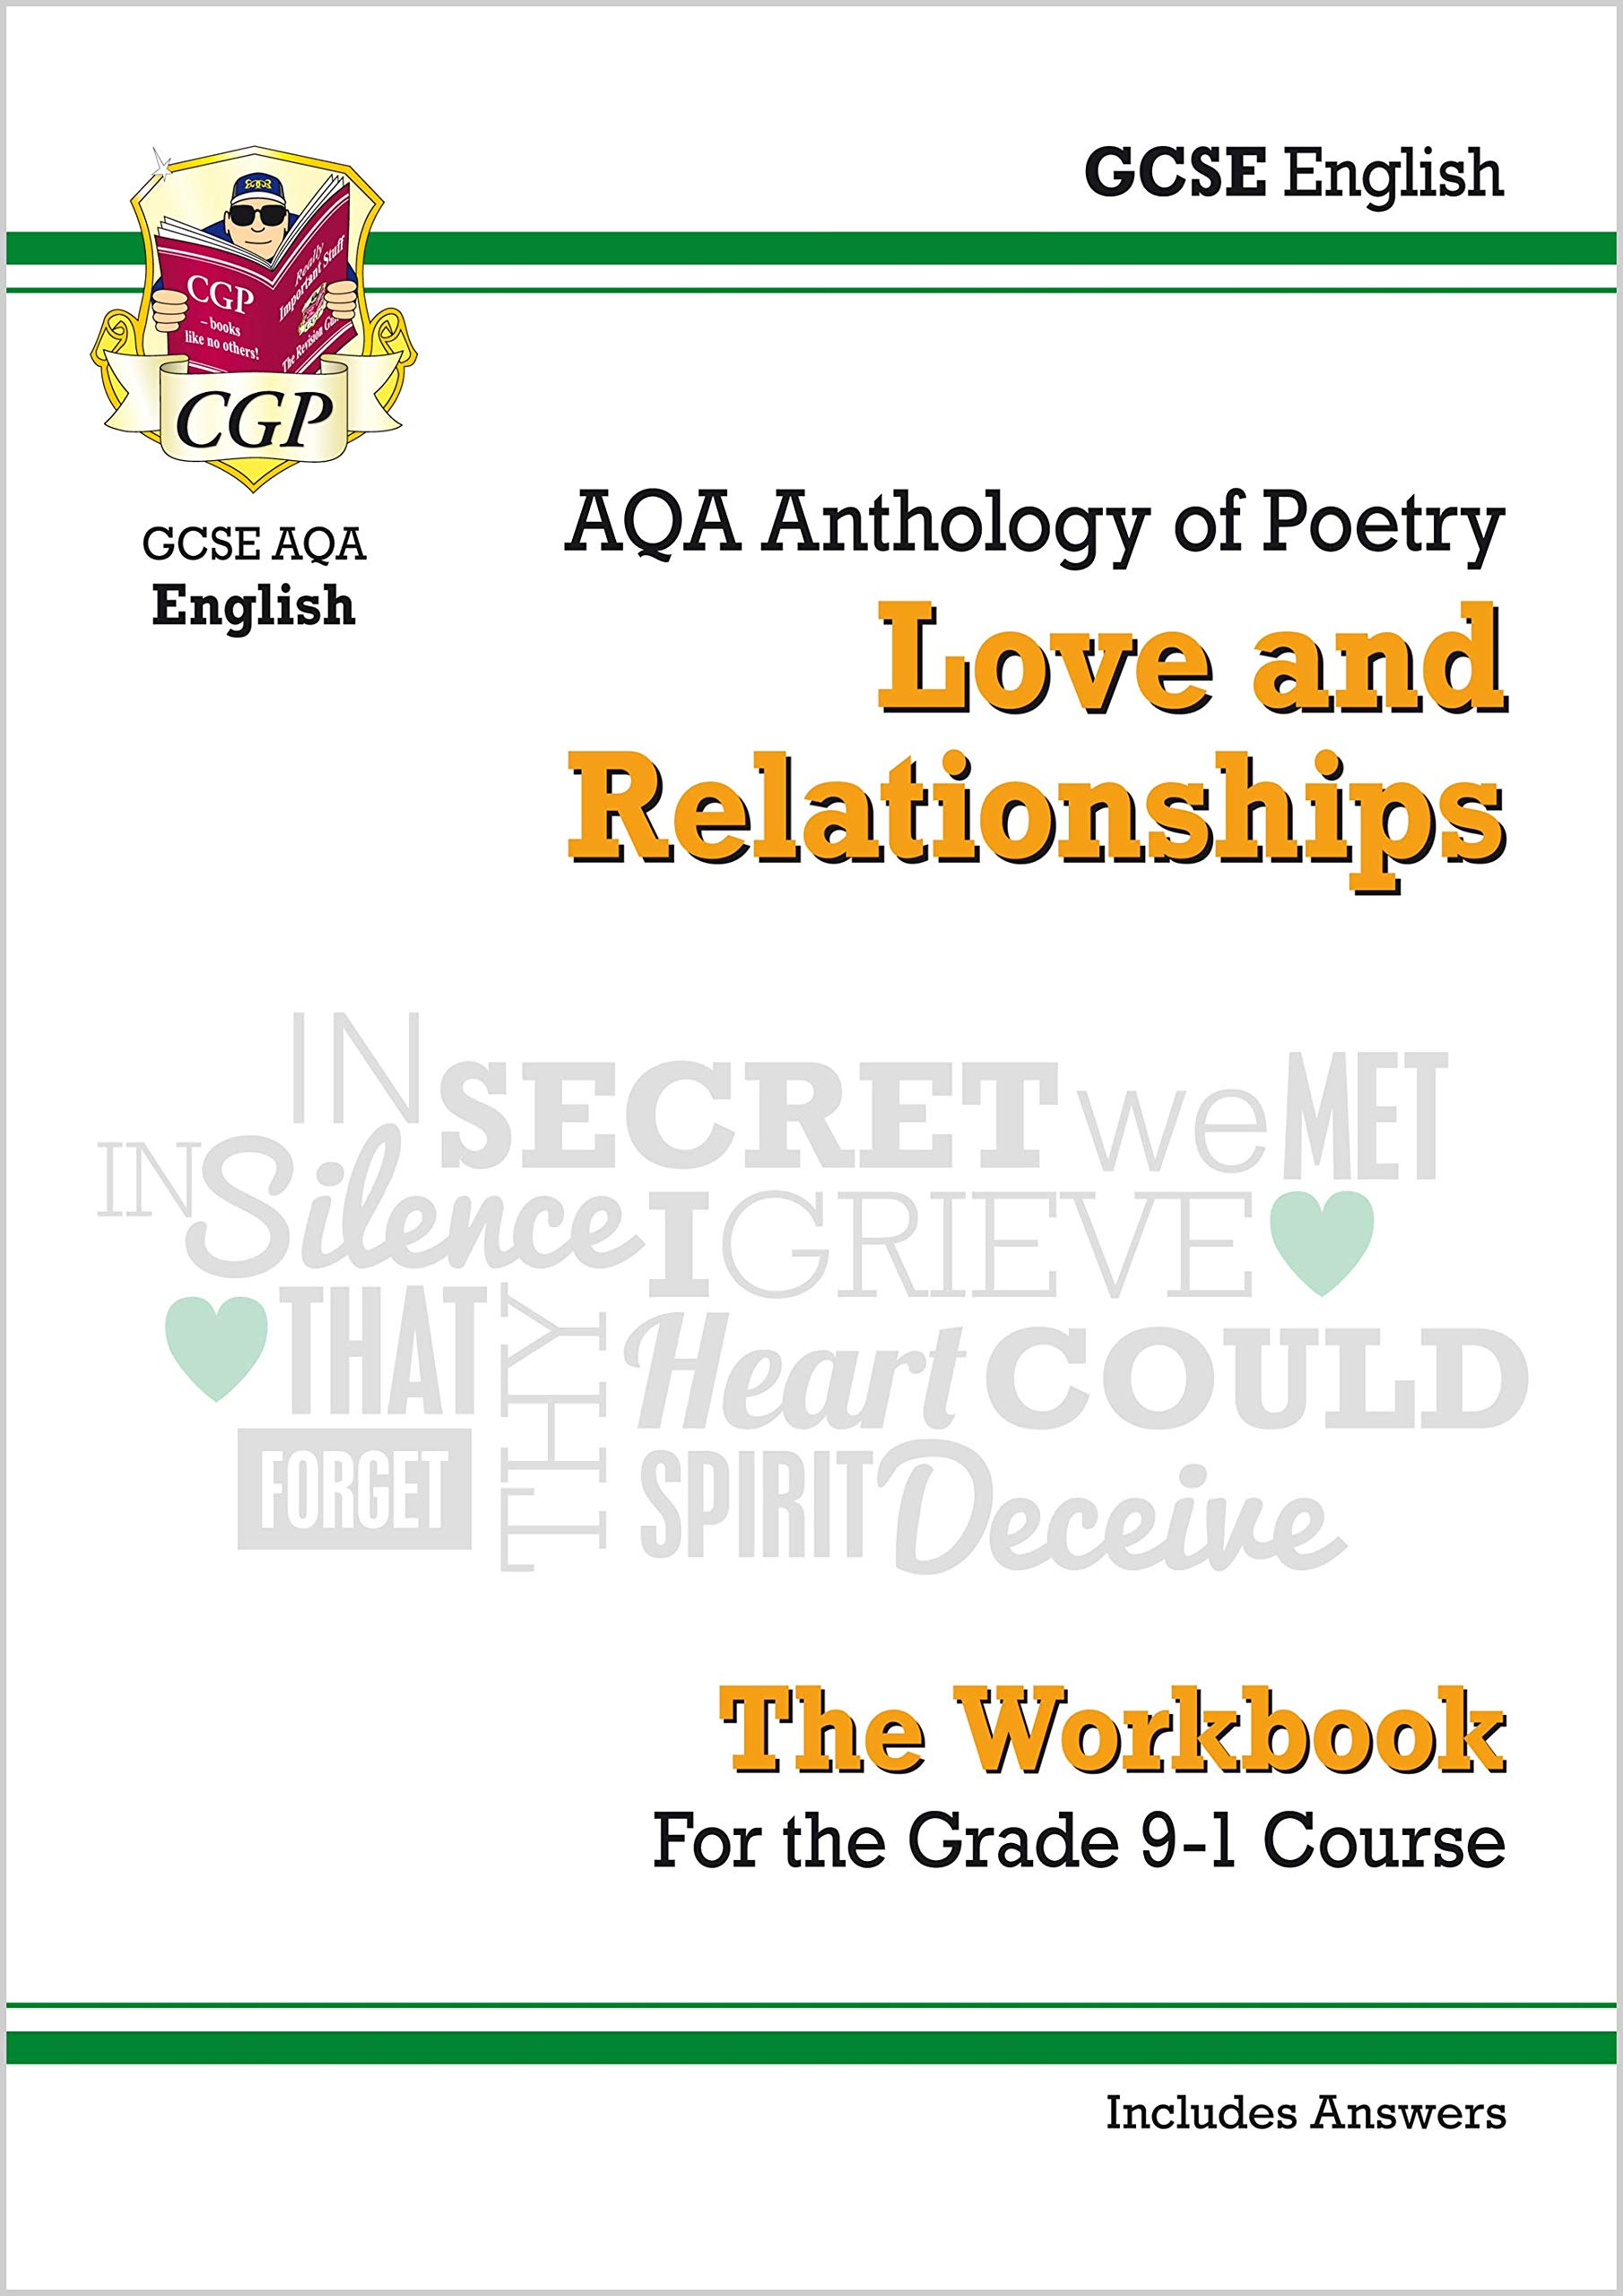 GCSE English Literature AQA Poetry Workbook: Love & Relationships Anthology (includes Answers)